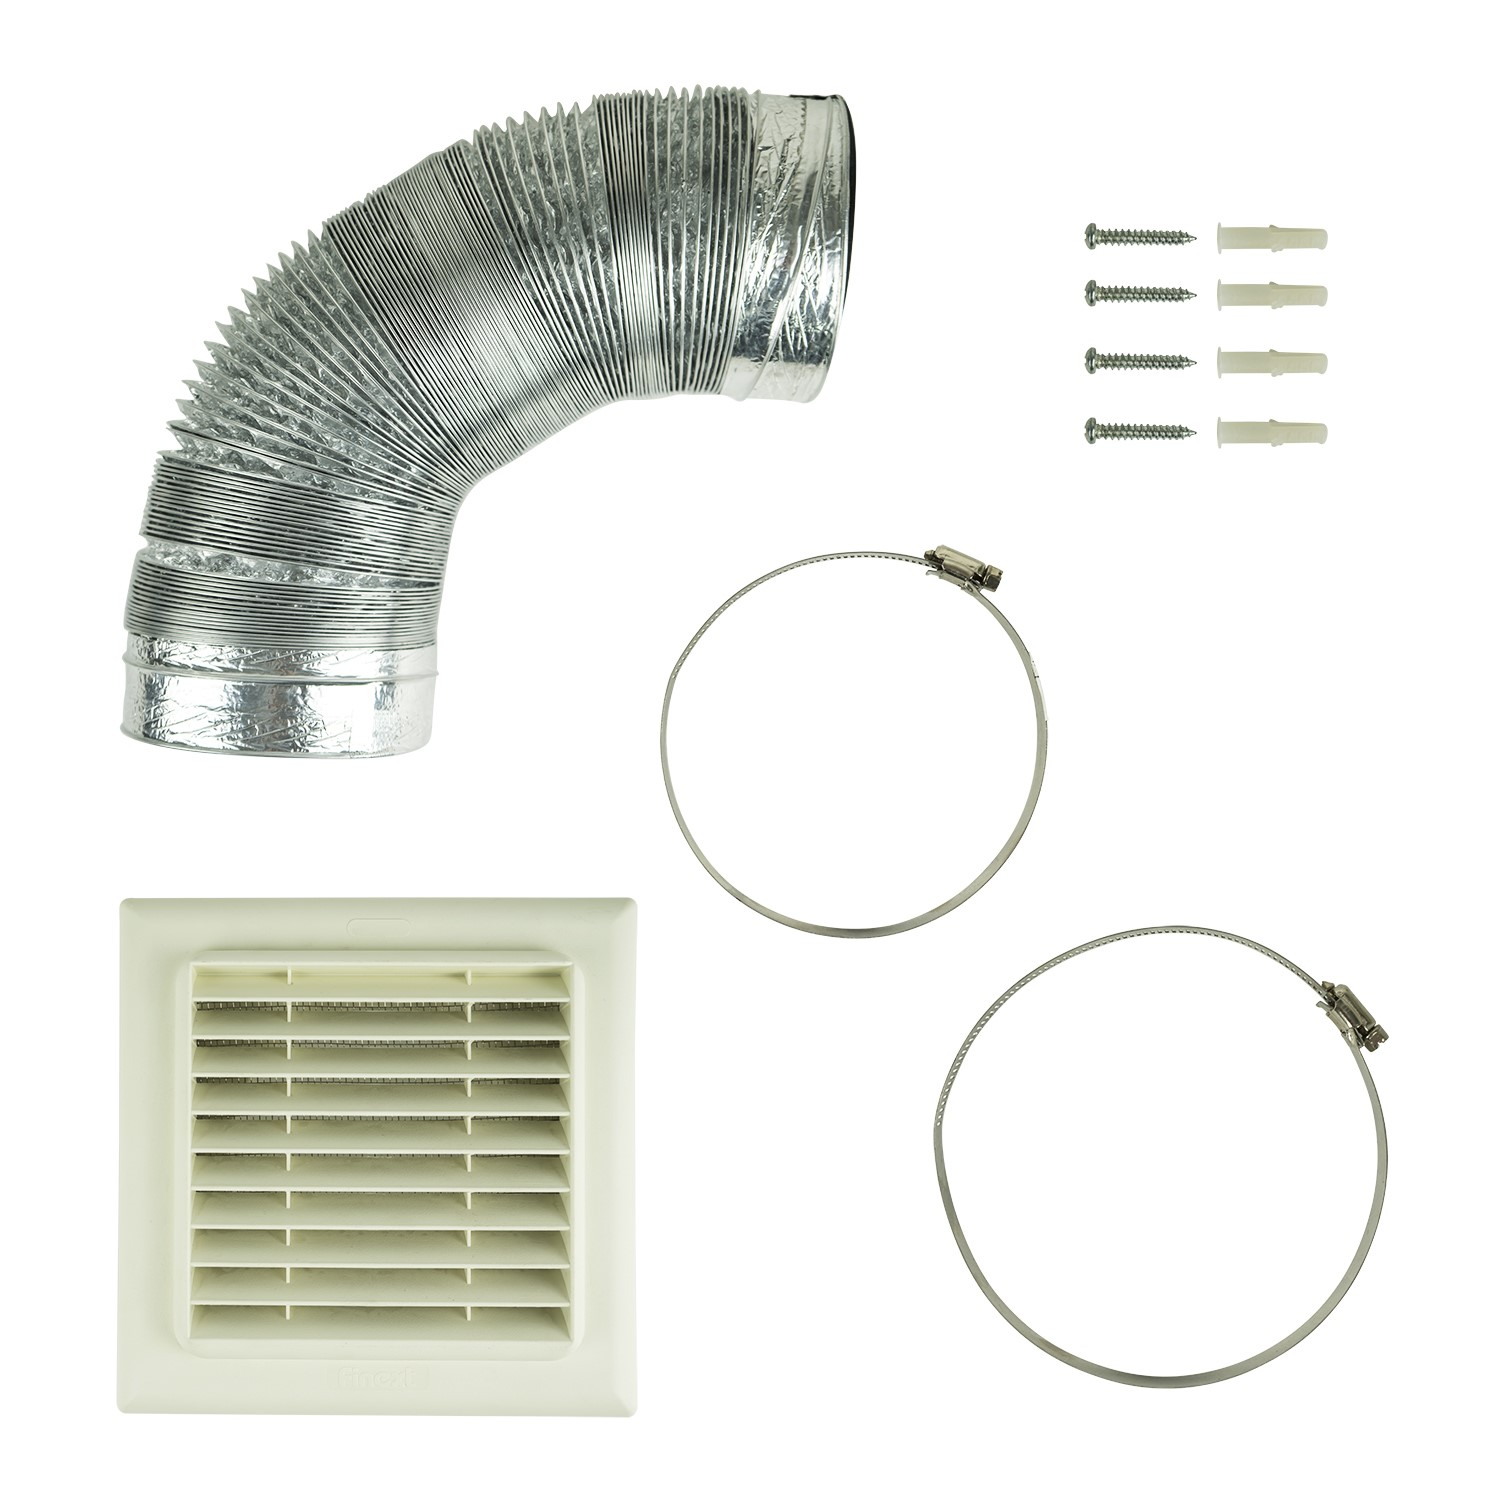 Grade A1 Universal 120 125mm X 3m Kitchen Cooker Hood Vent Ducting Kit With Flat Vent Electriq